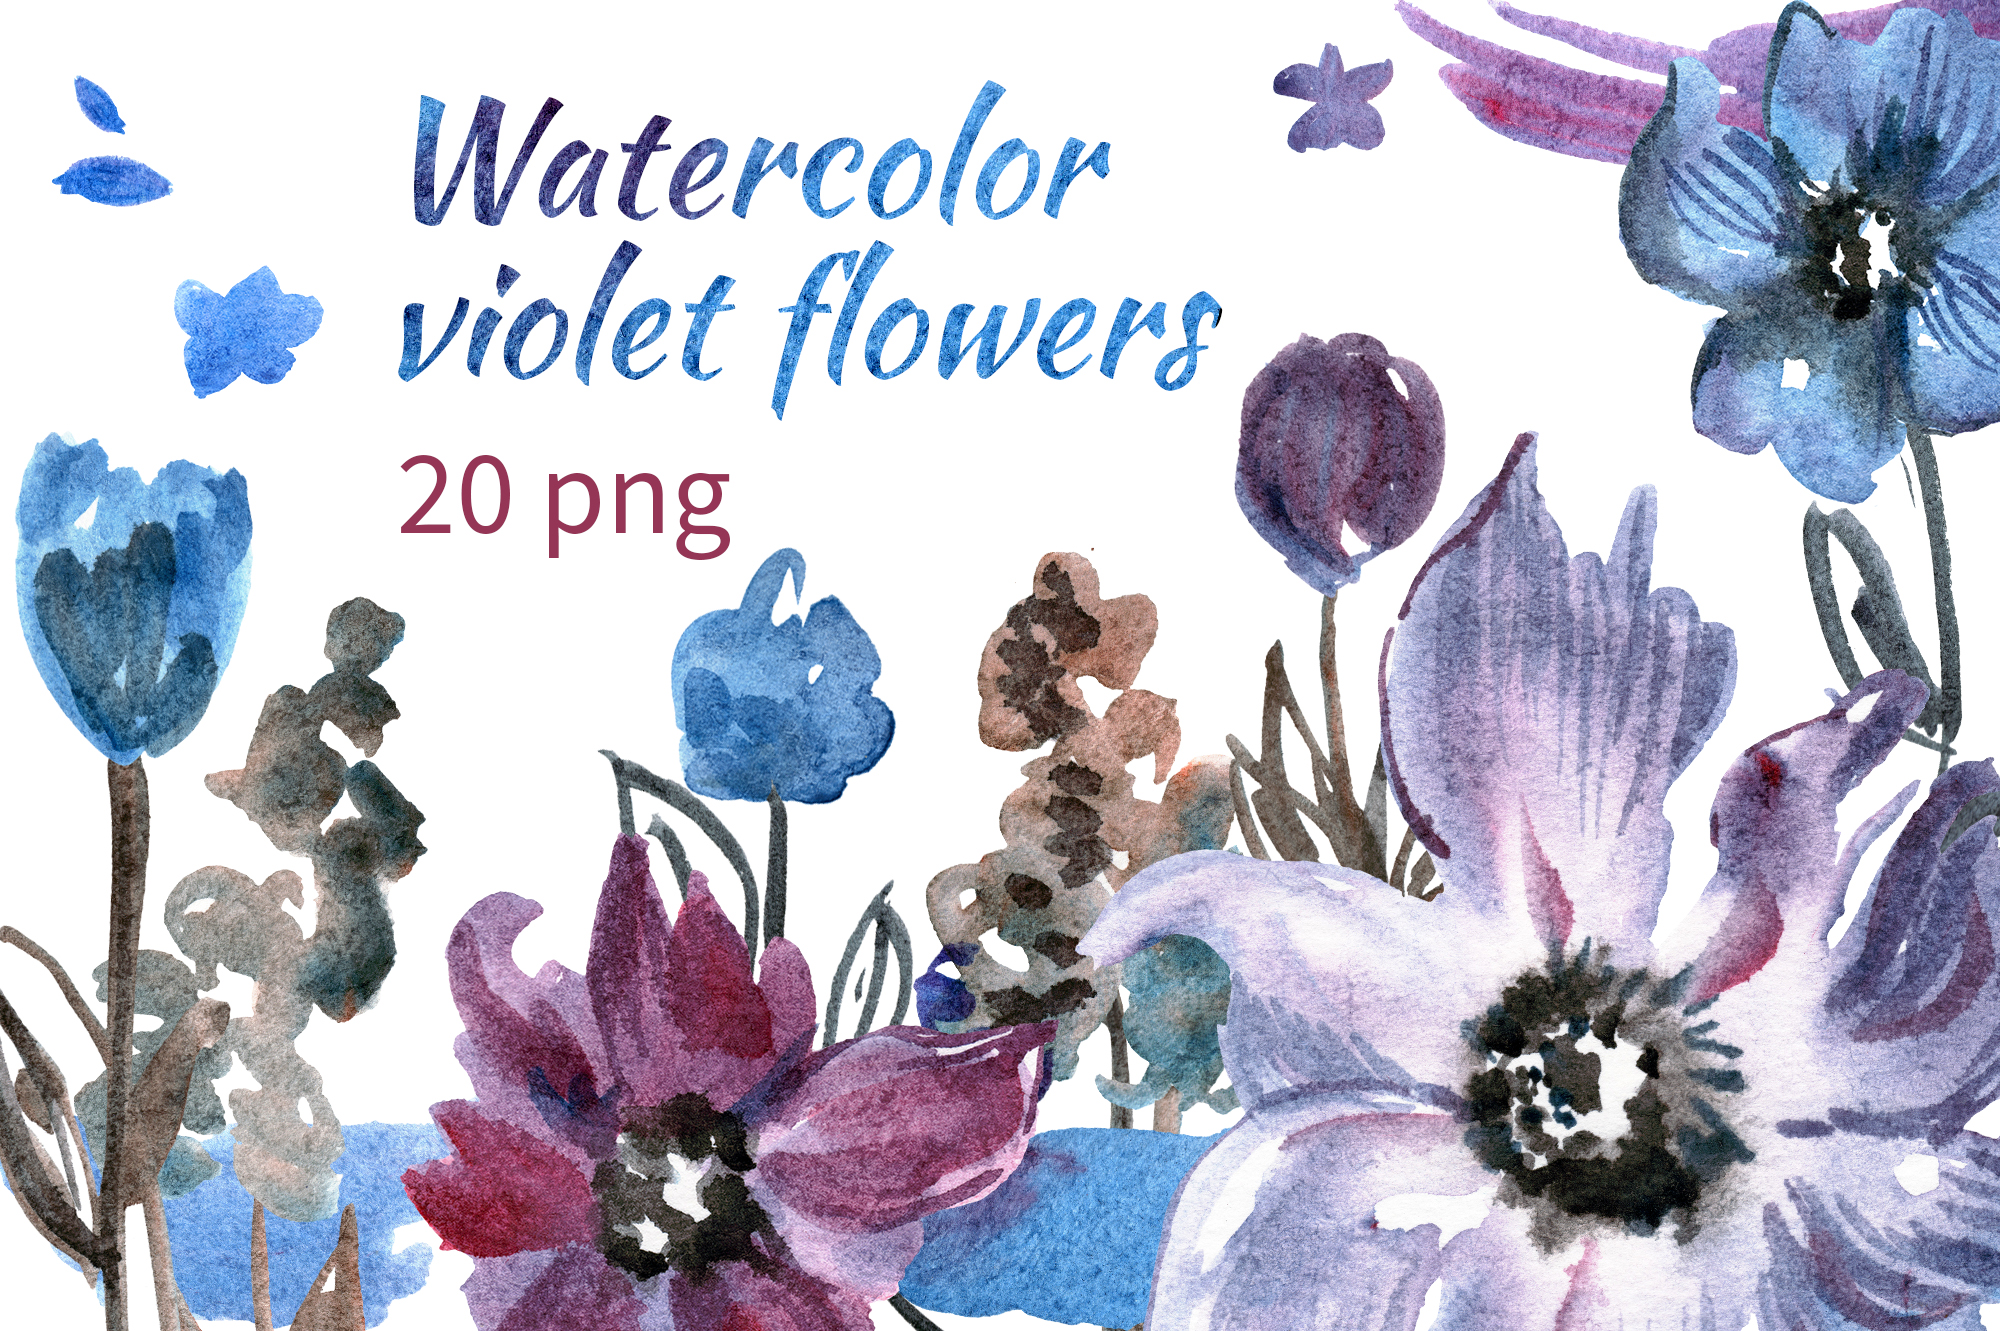 Watercolor violet flowers example image 1